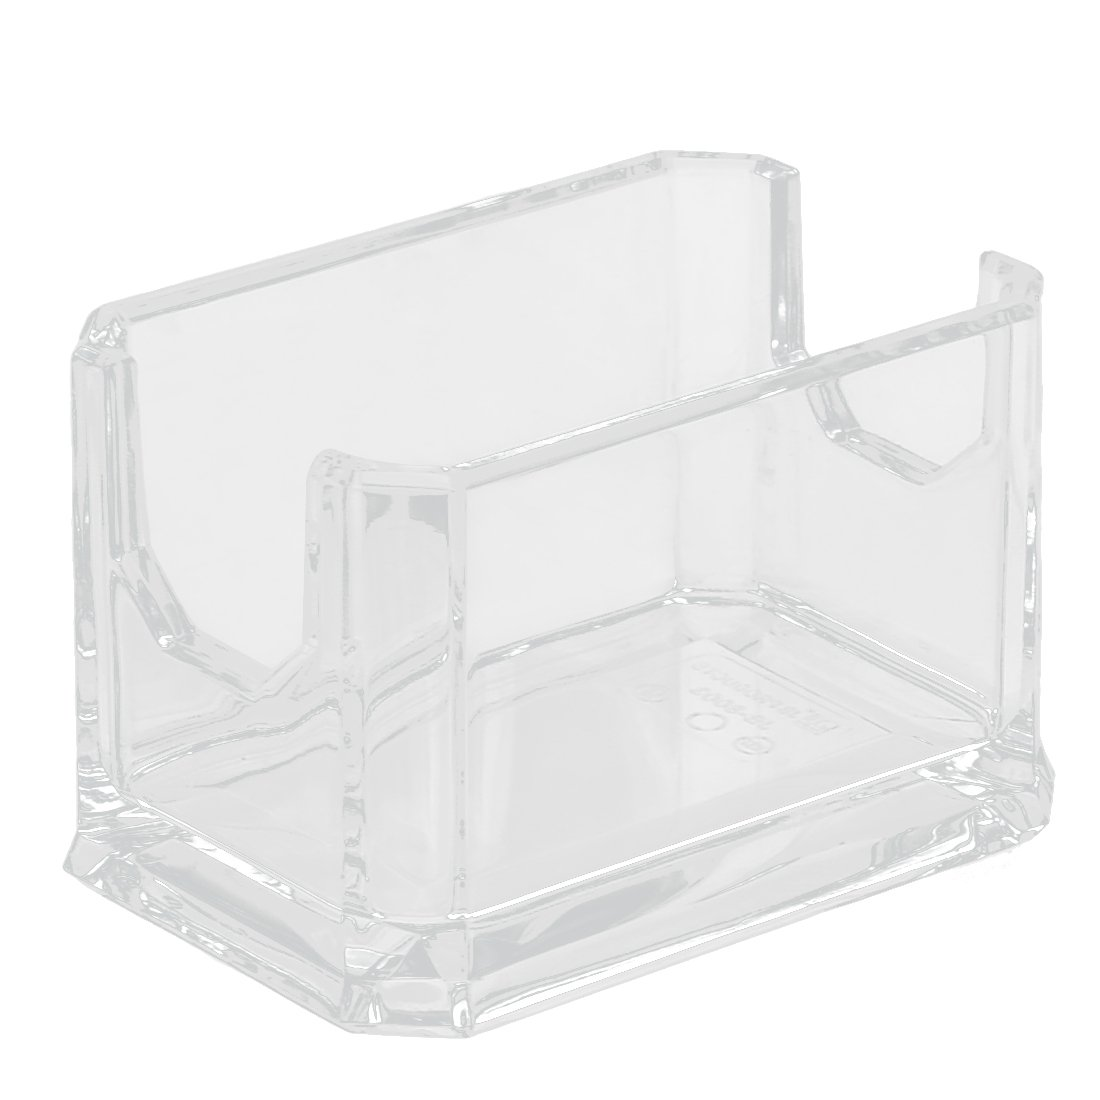 uxcell Plastic Coffee Shop Sugar Tea Bag Packet Holder Container Clear US-SA-AJD-193634